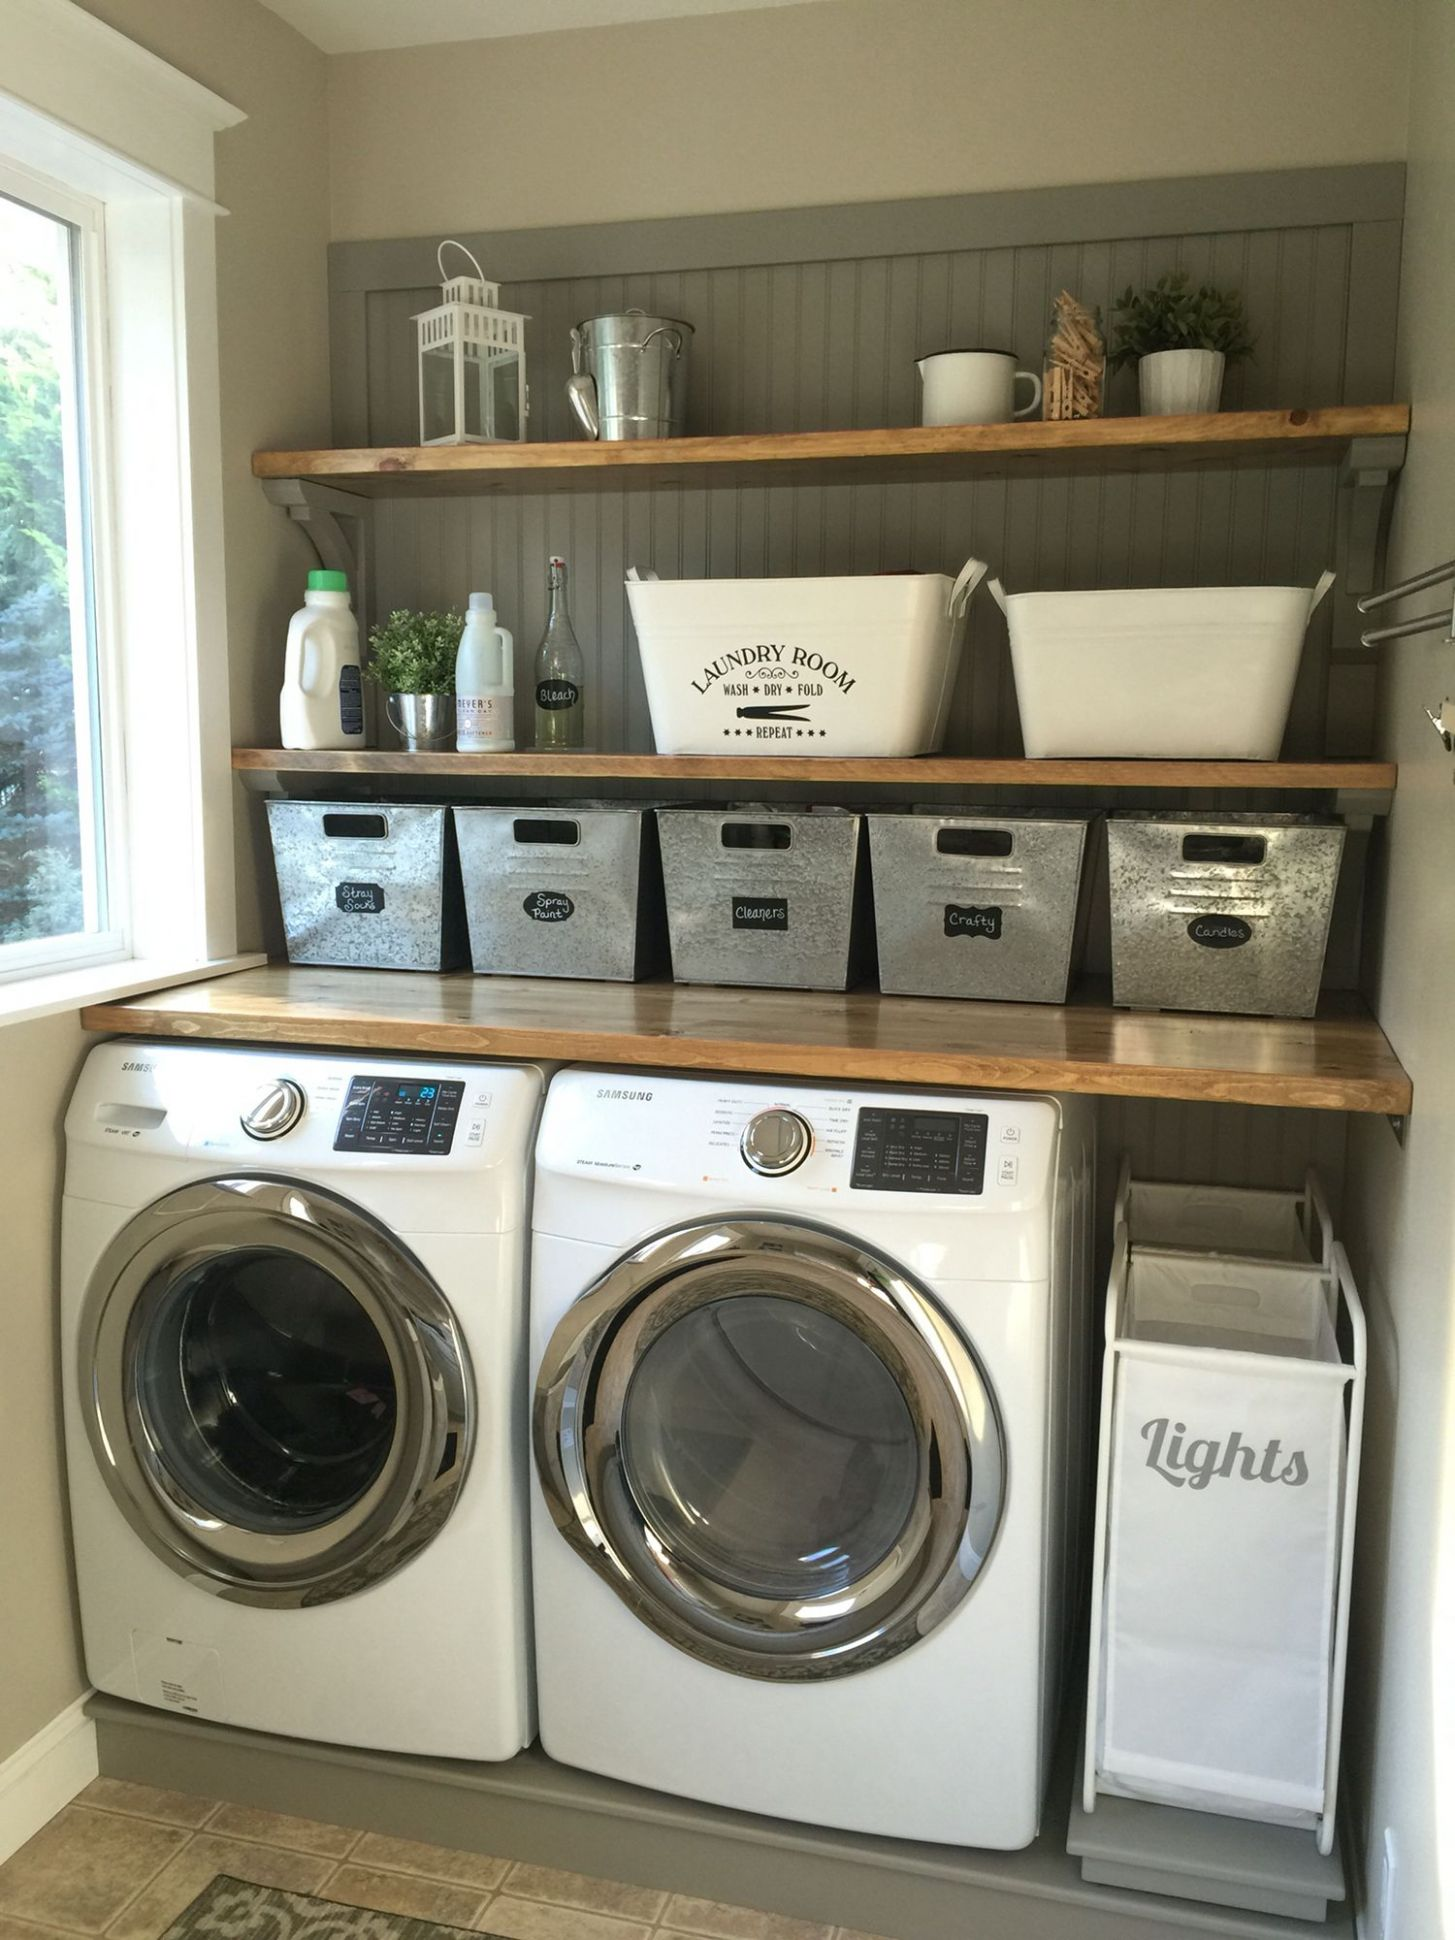 DIY Laundry Storage And Organization Ideas (10) - Onechitecture - laundry room organization ideas diy